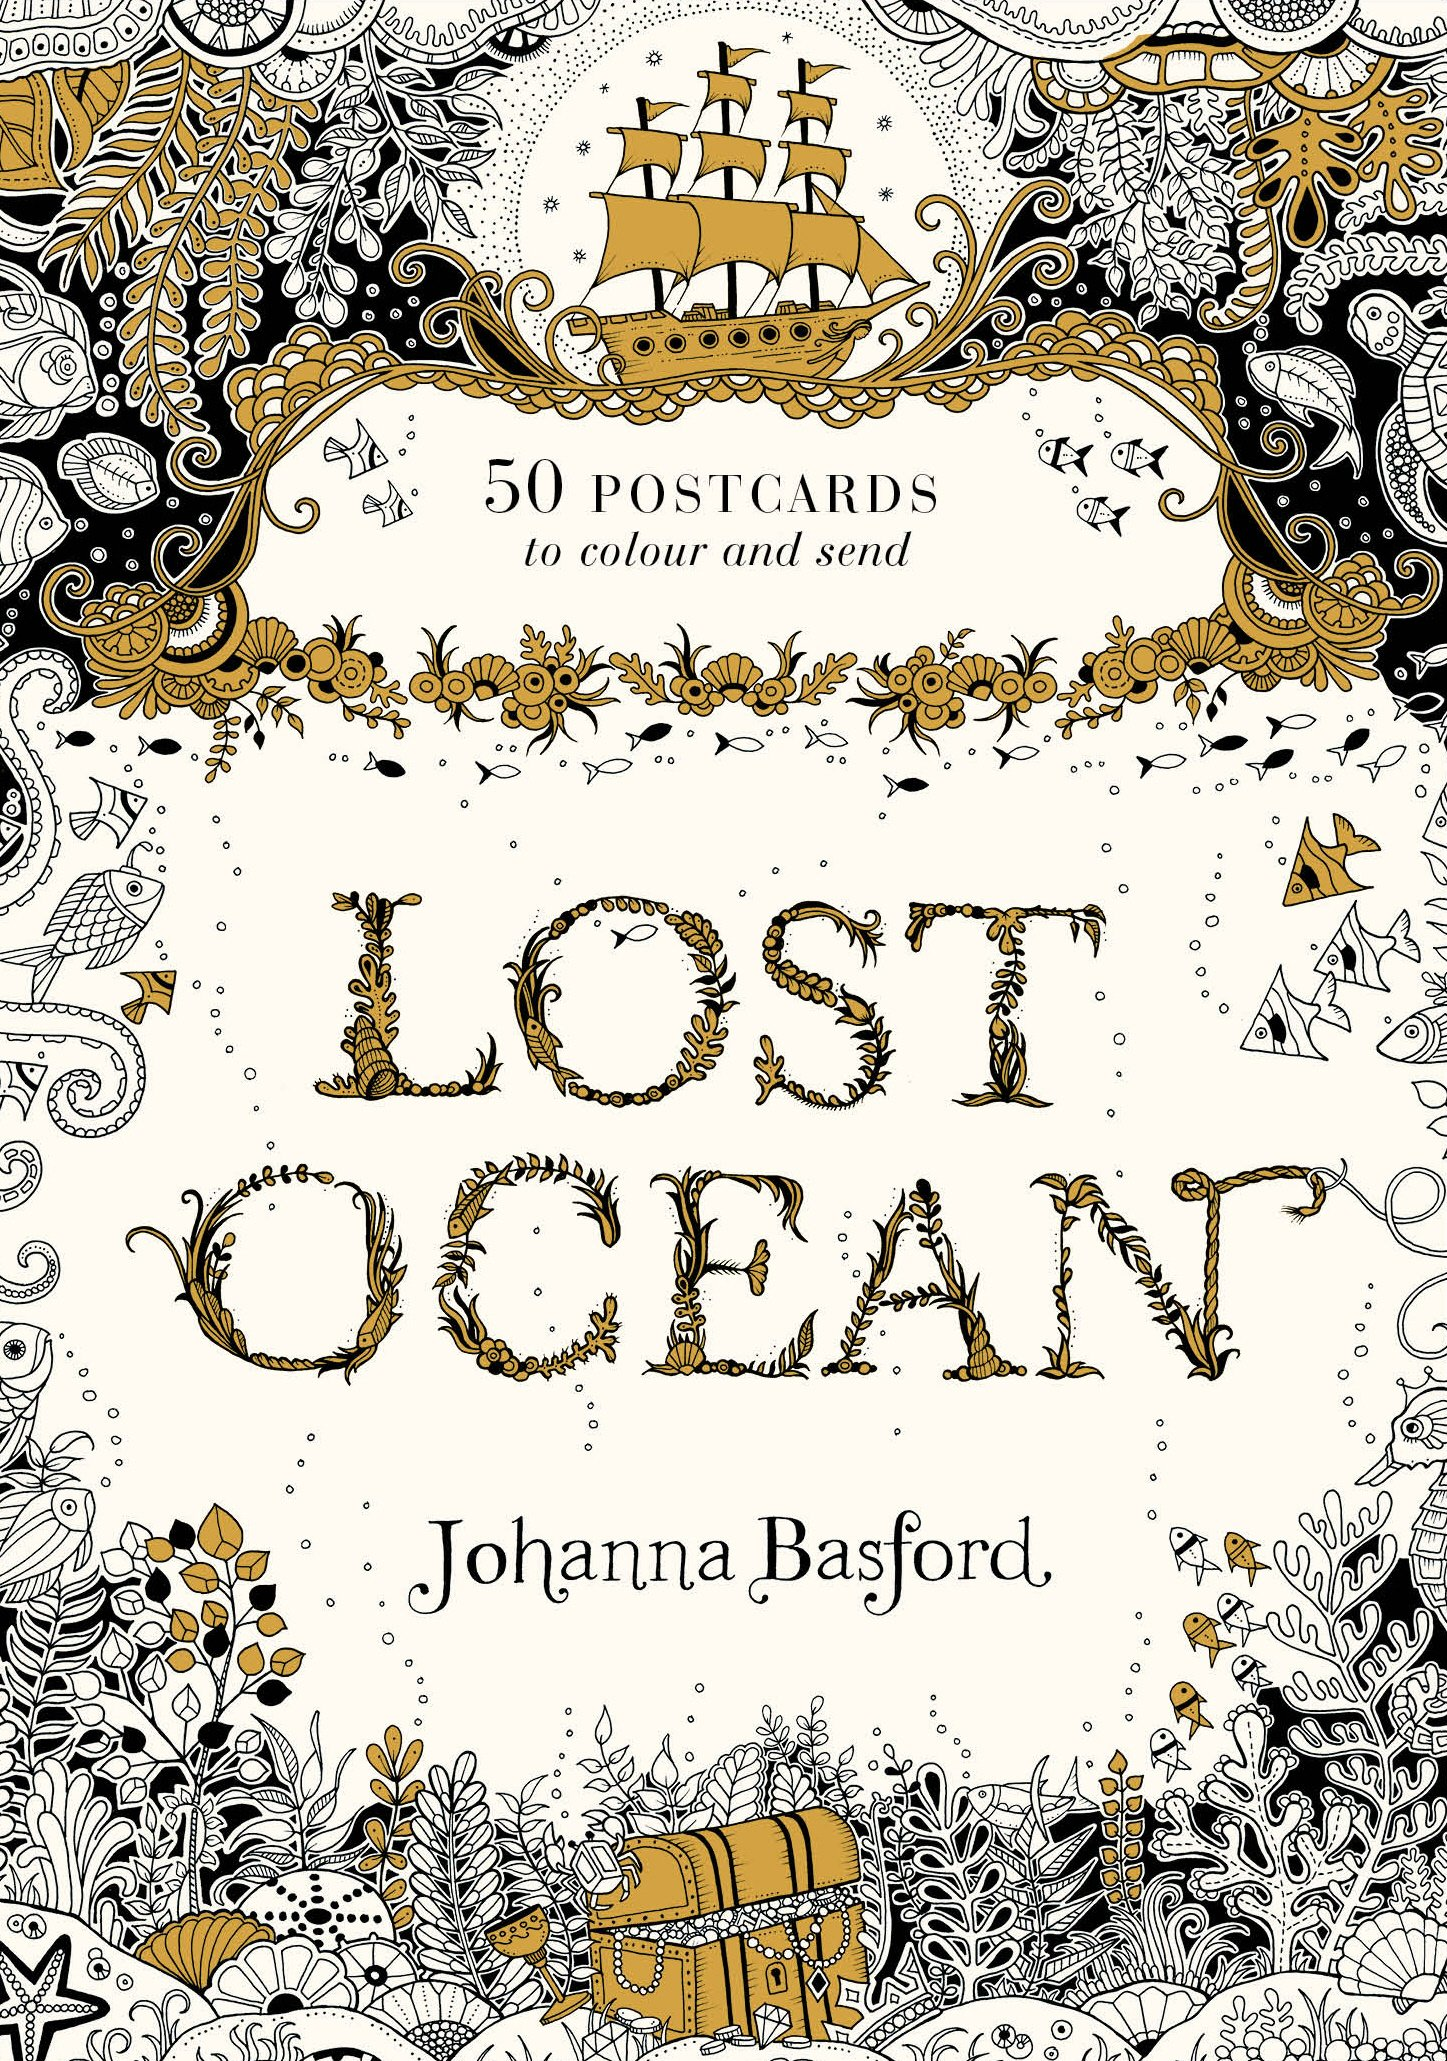 Lost Ocean Postcard Edition: 50 Postcards to Colour and Send 30pcs in one postcard owe you a song romantic love christmas postcards greeting birthday message cards 10 2x14 2cm